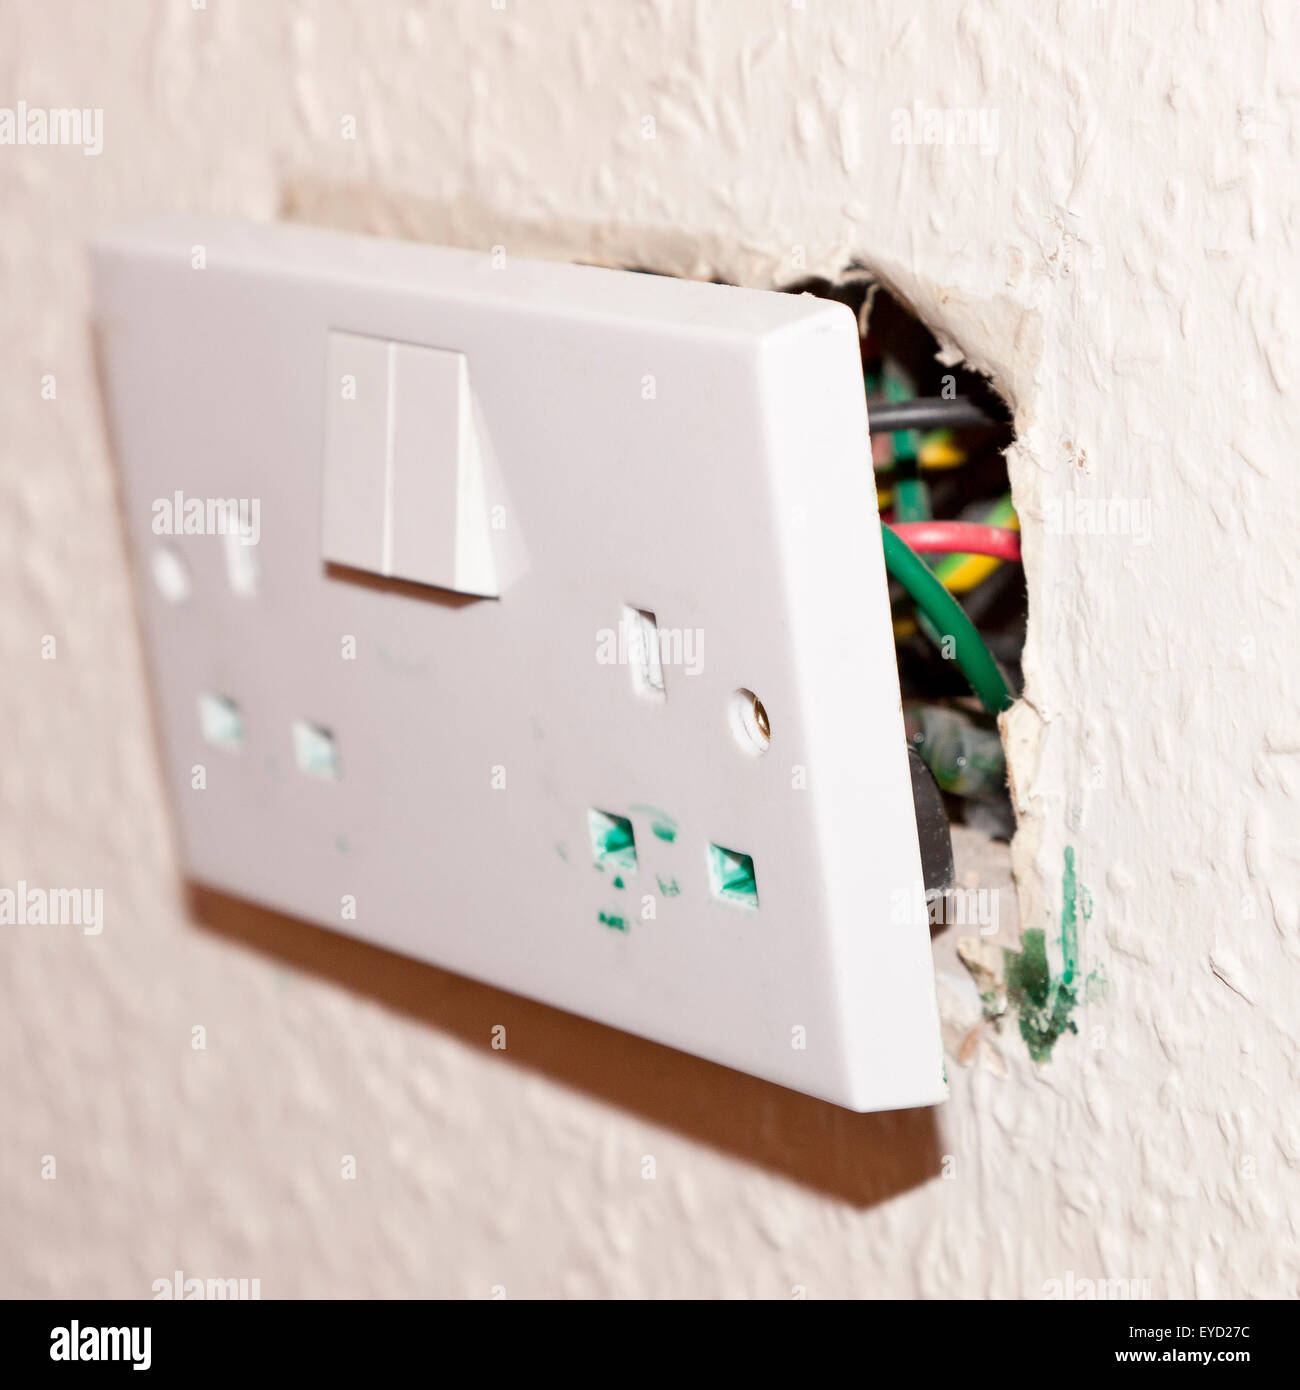 Double Socket Stock Photos Images Alamy Wire Light Switch From An Electrical Showing The Problem Of Di Osoctyl Pathalate In Uk Causing